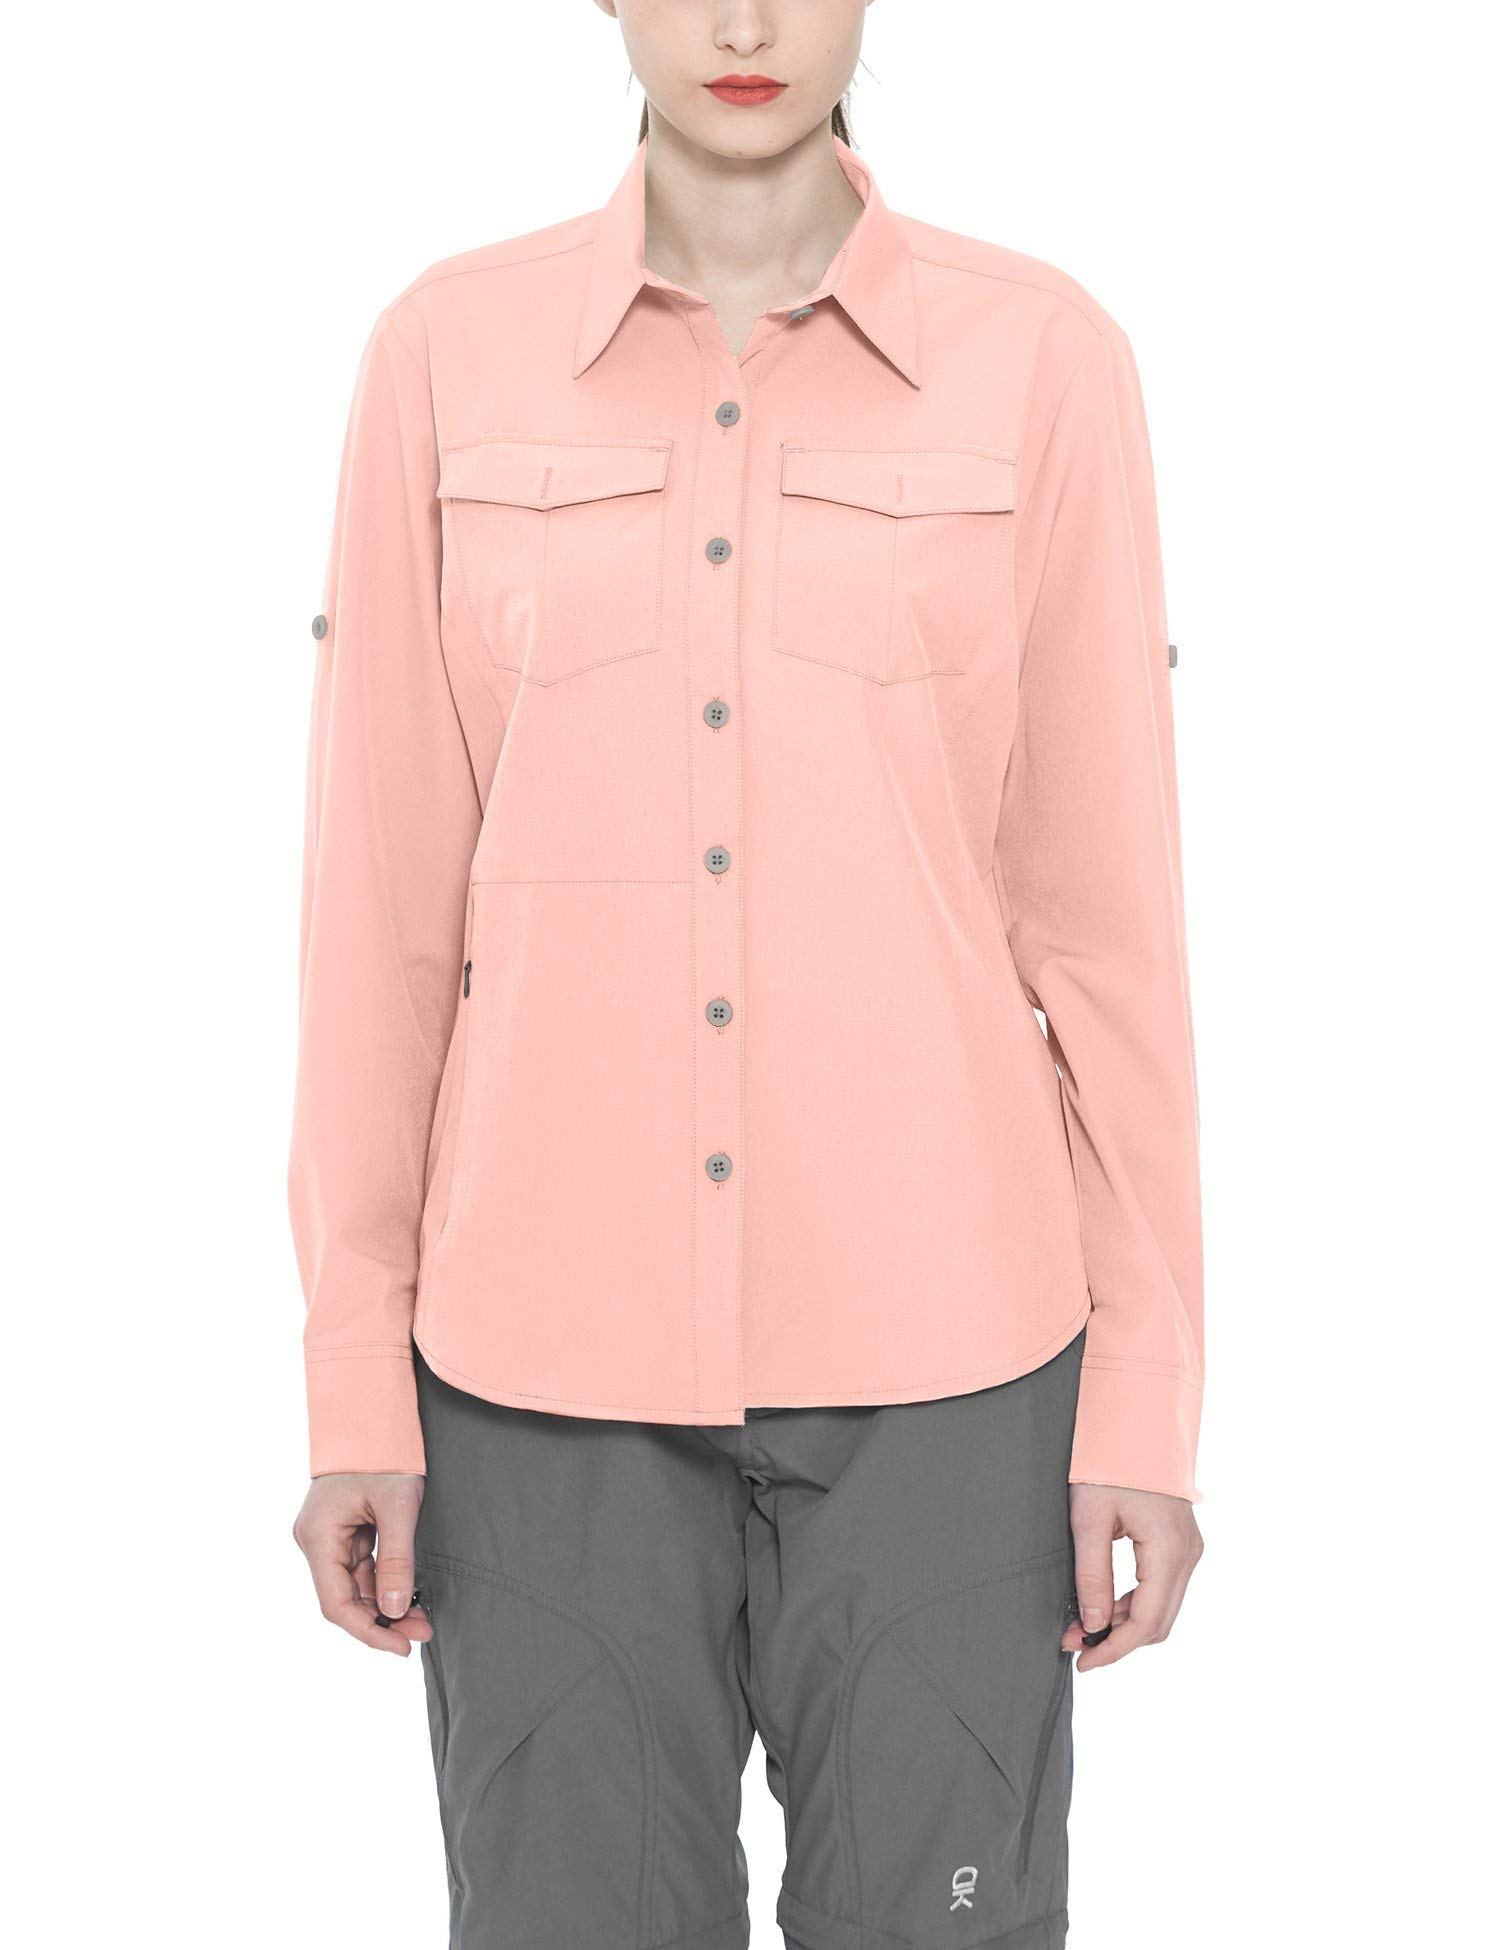 Little Donkey Andy Women's Stretch Quick Dry Water Resistant Outdoor Shirts UPF50+ for Hiking, Travel, Camping Pink Size XL by Little Donkey Andy